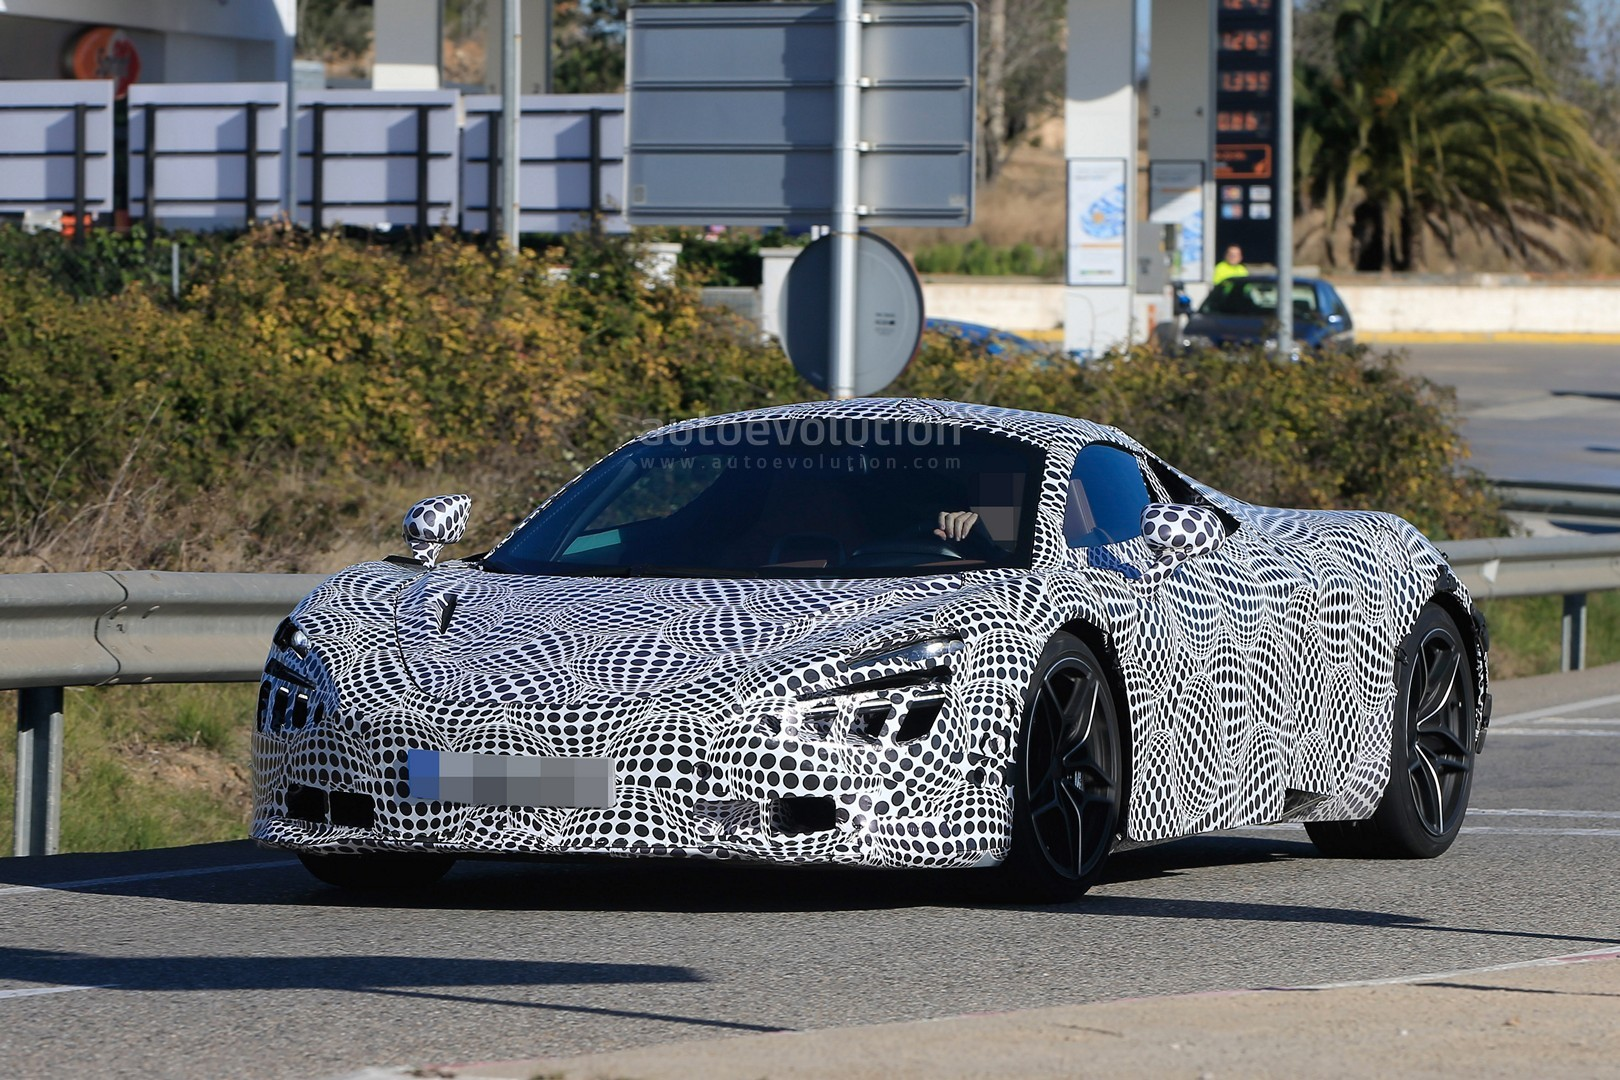 2018 mclaren 720s black. simple 720s 2018 mclaren 720s p14 spied with black and white camouflage throughout mclaren 720s black